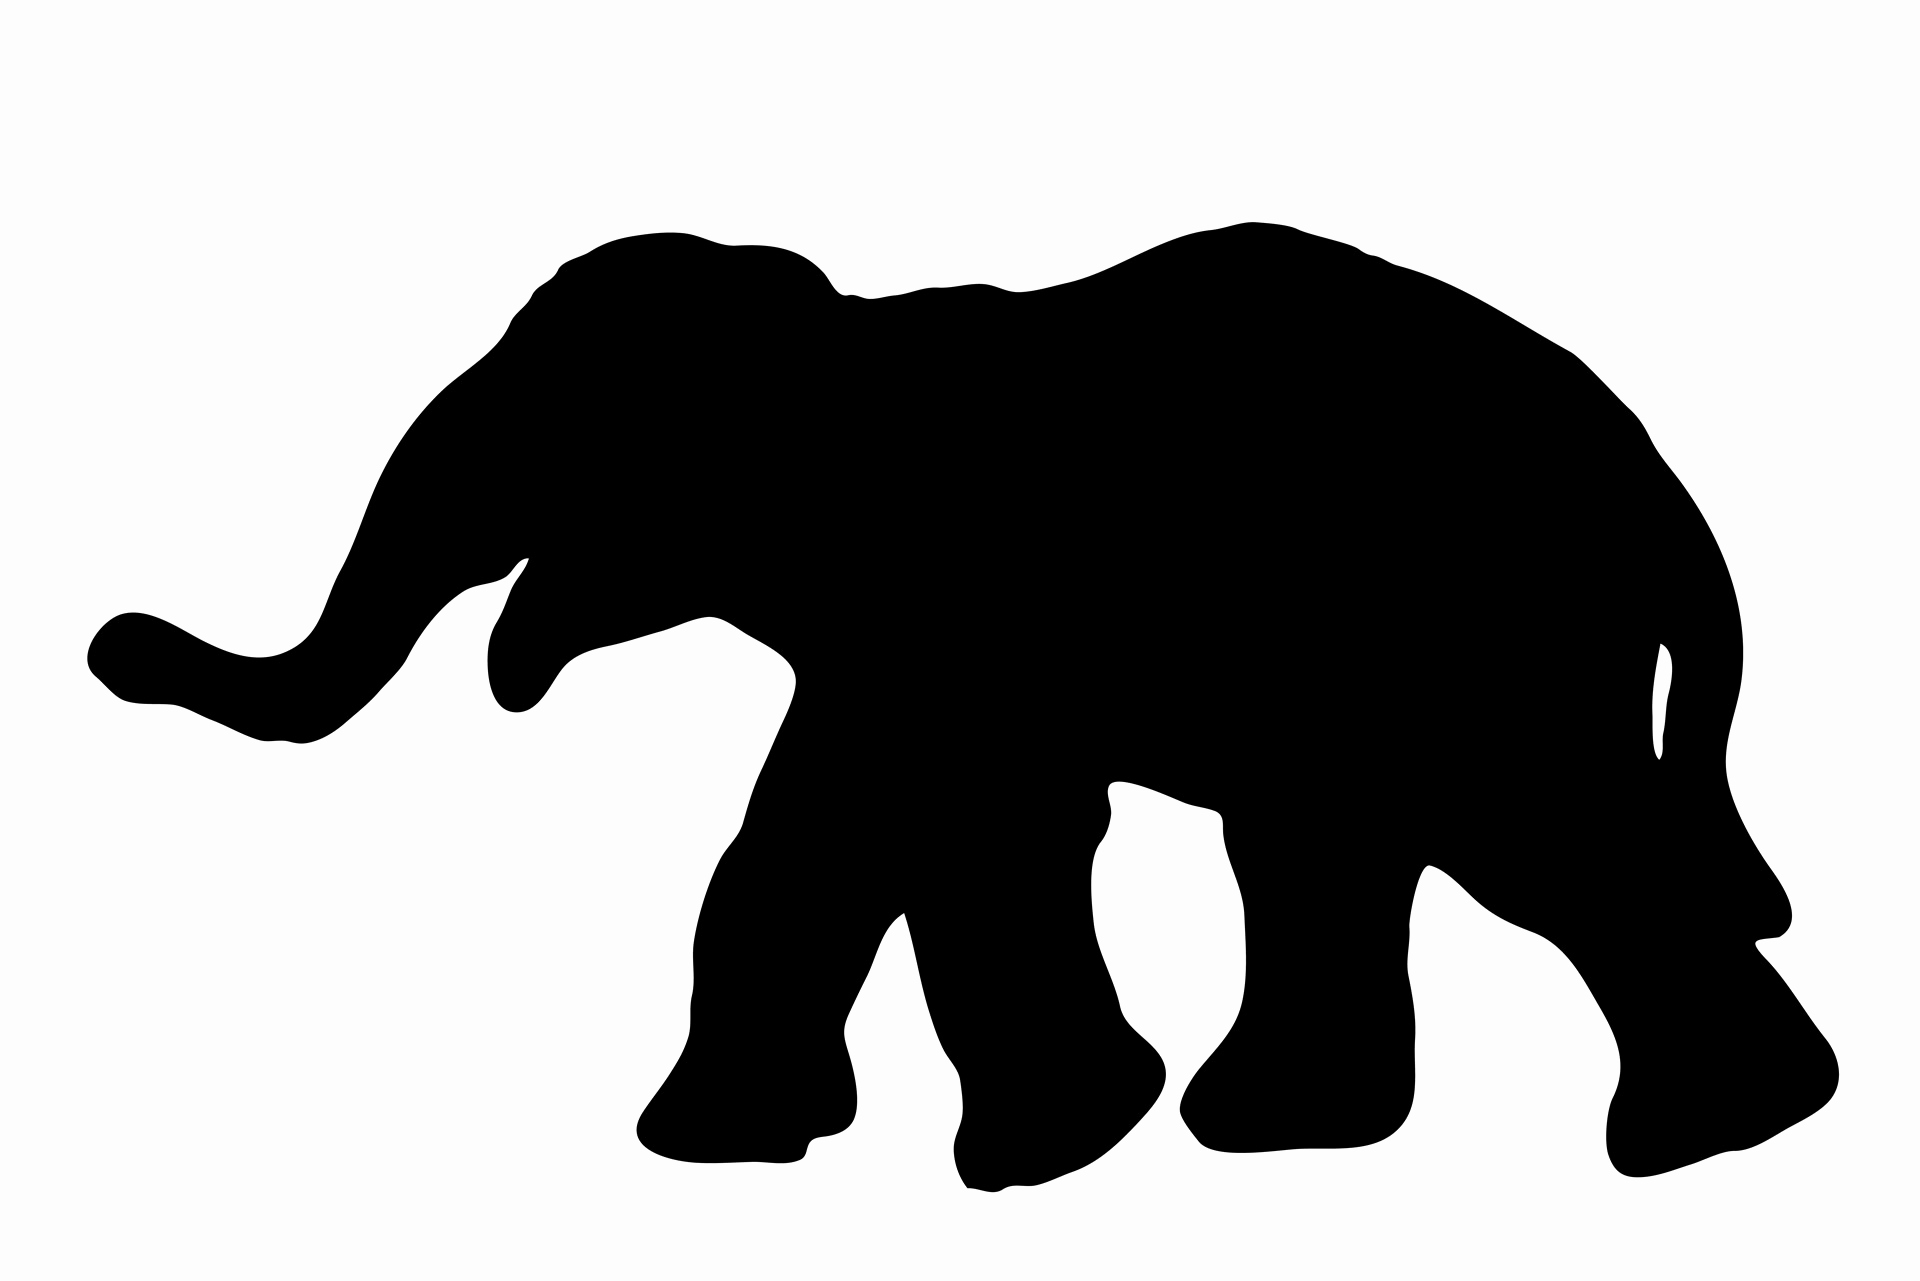 1920x1281 Elephant With Trunk Up Silhouette Awesome Elephant Clipart